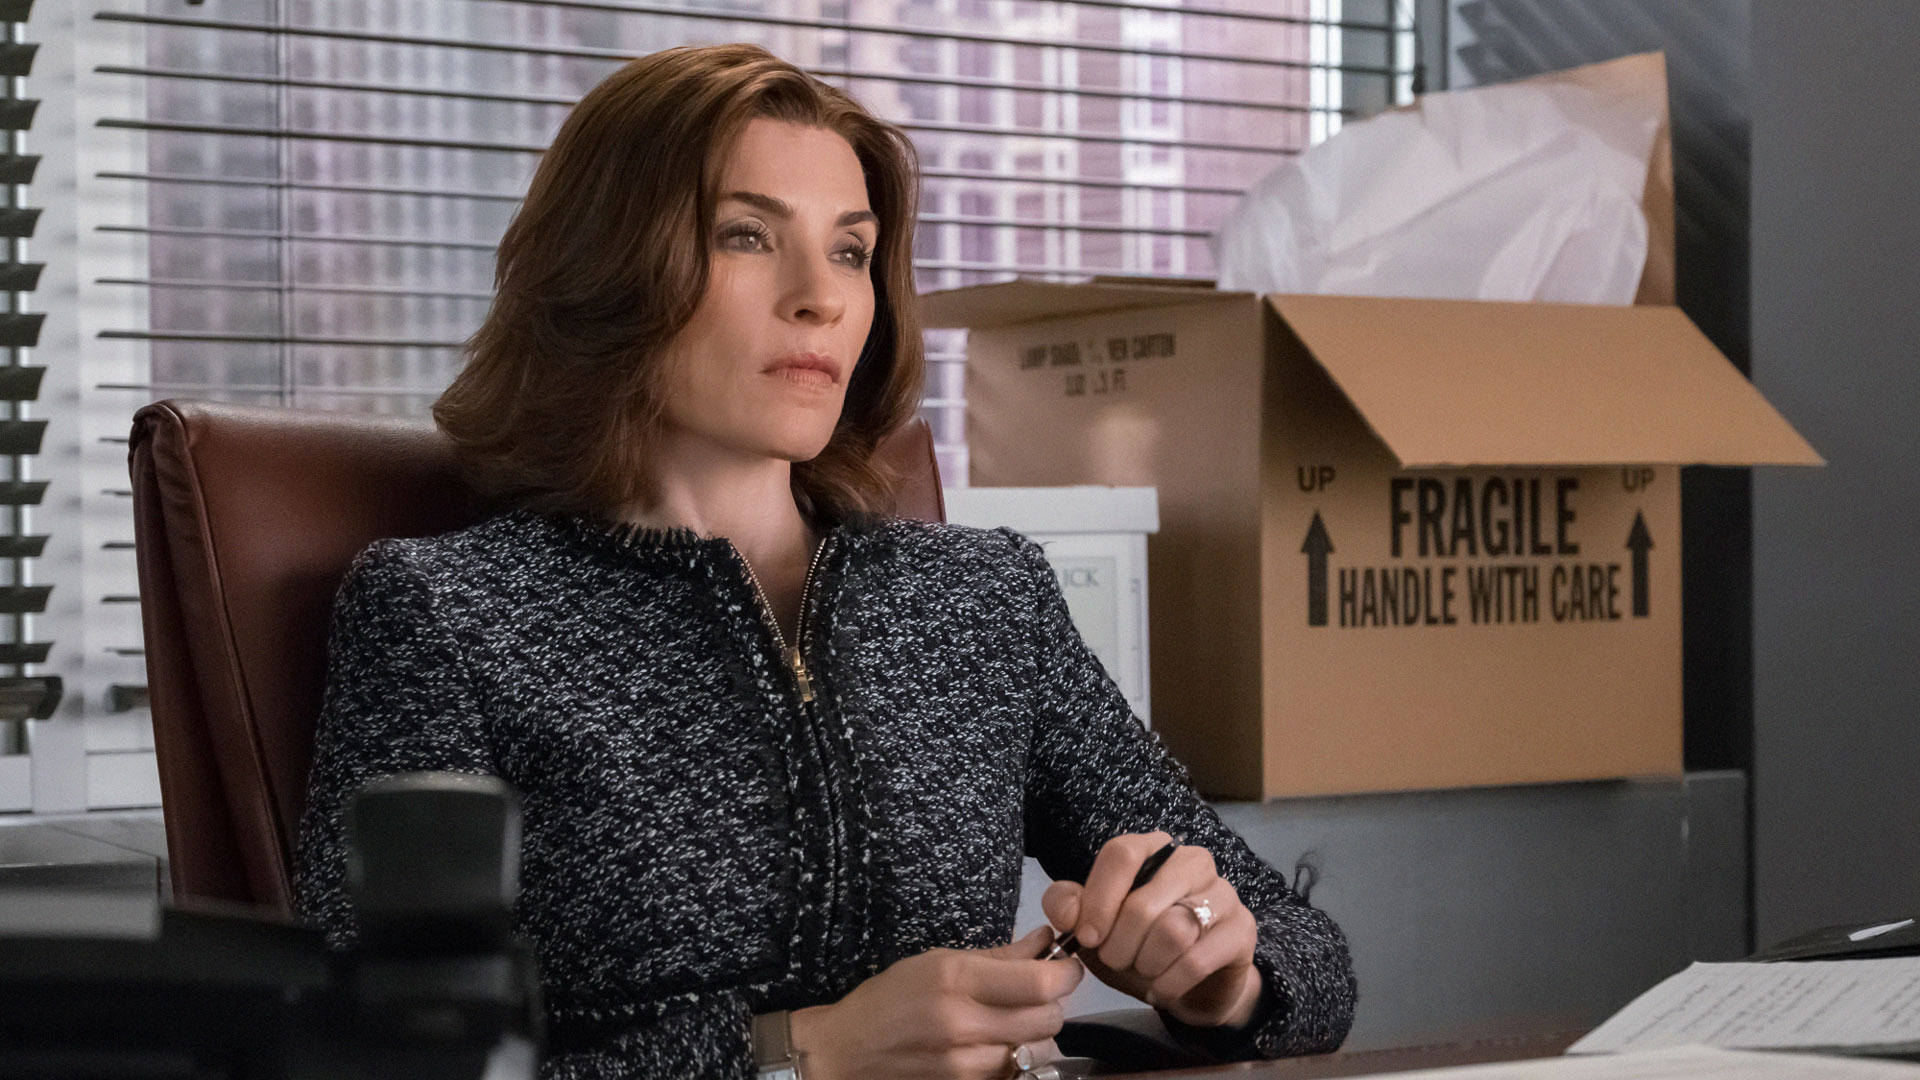 Alicia Florrick weighs her options.